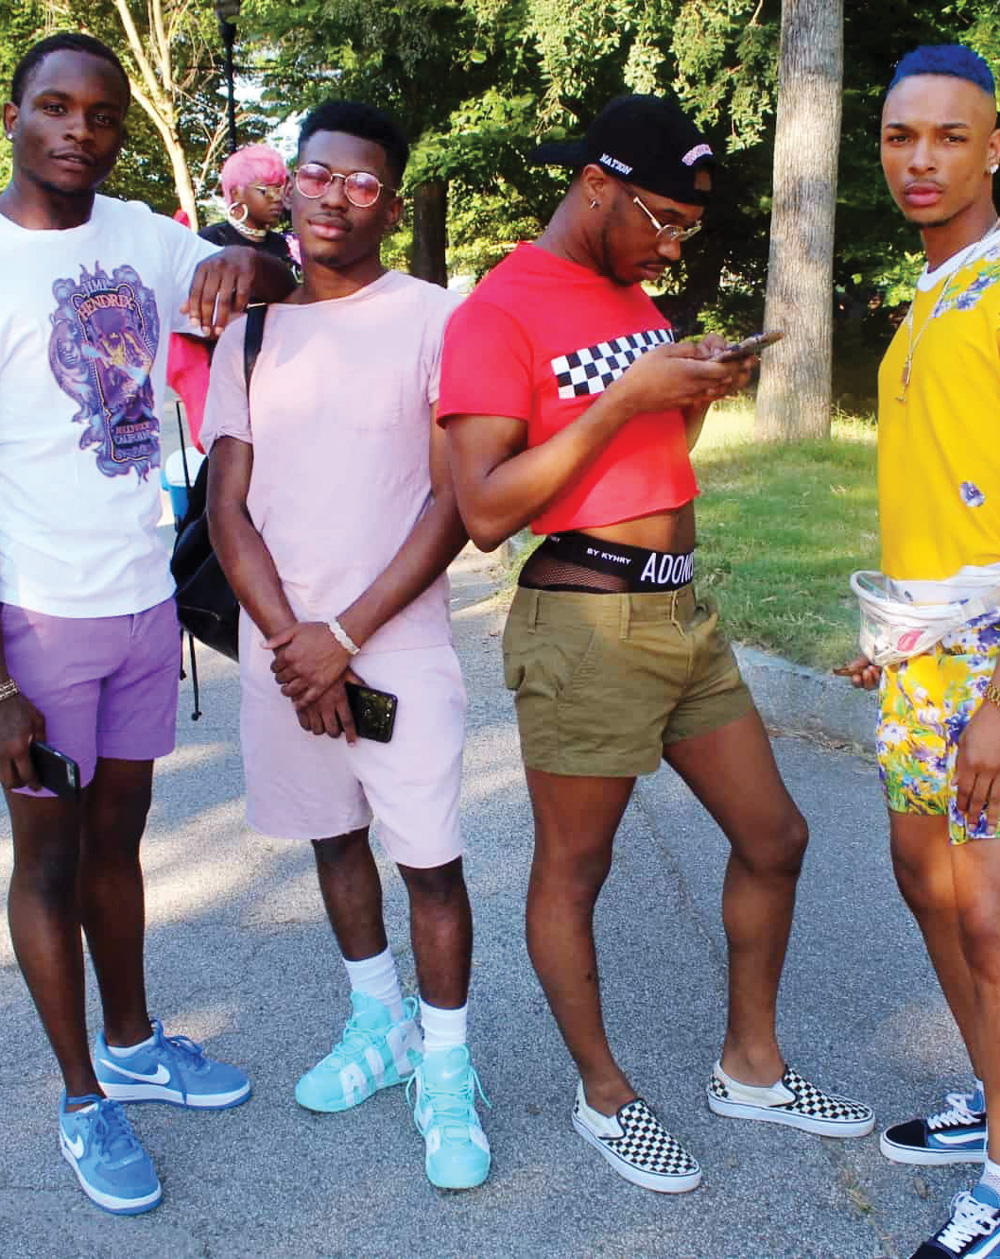 Men at a Black Gay Pride event